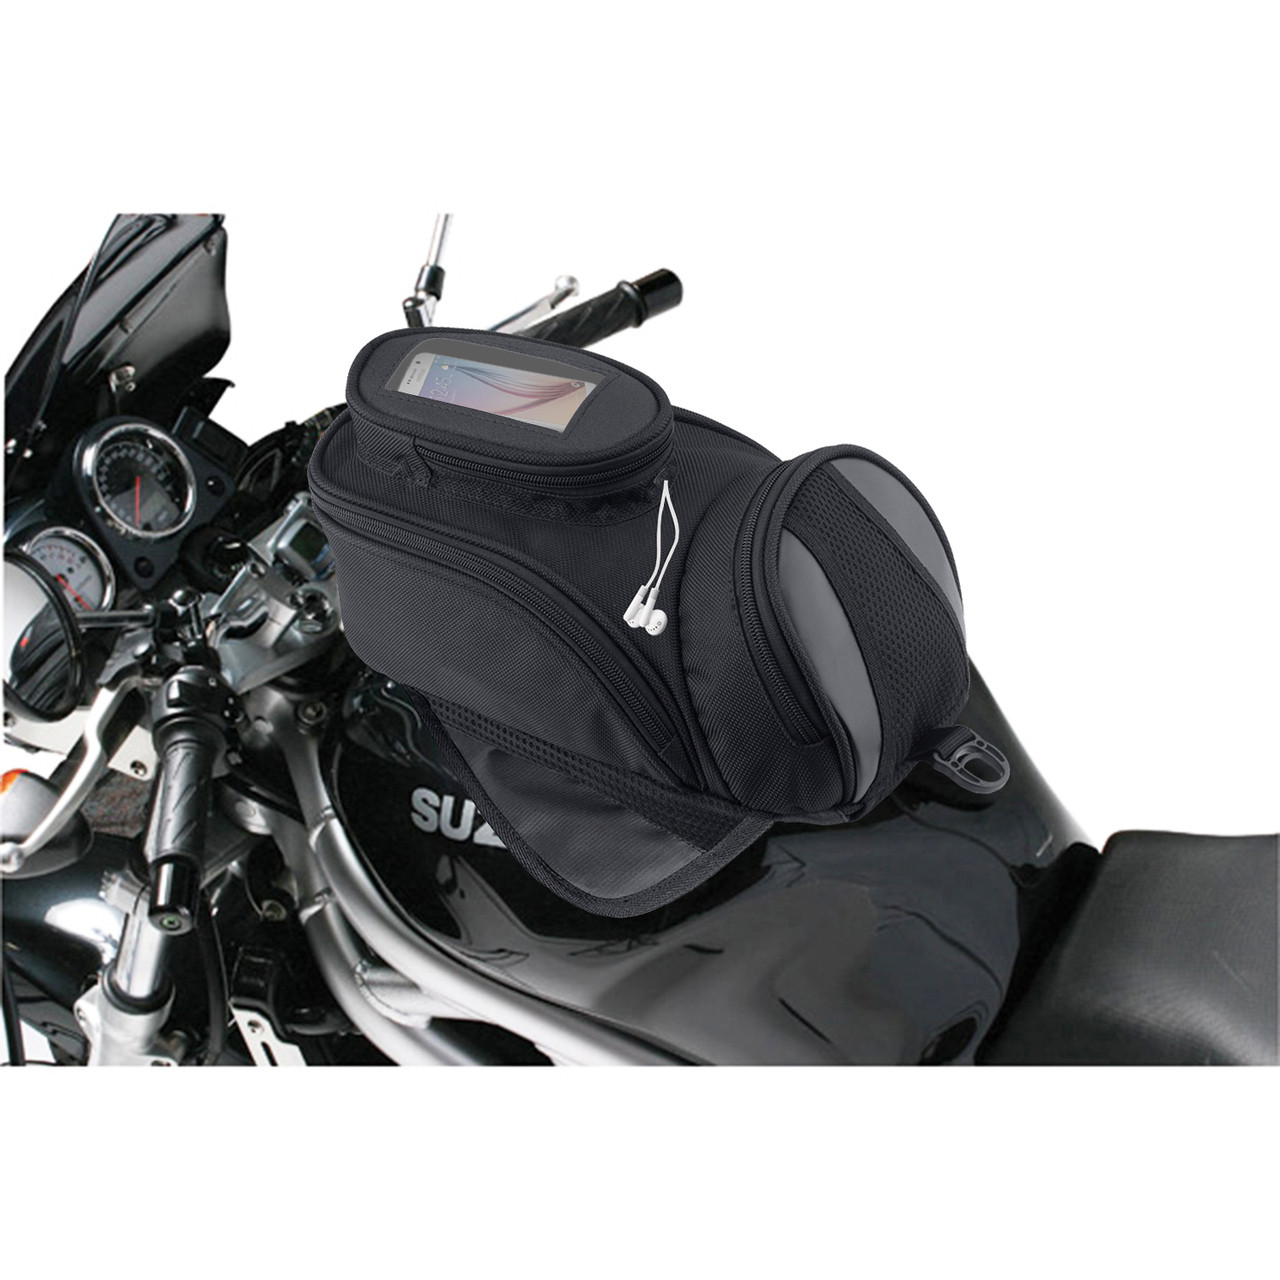 Viking Survival Series Motorcycle Tank Bag In front of Bike View